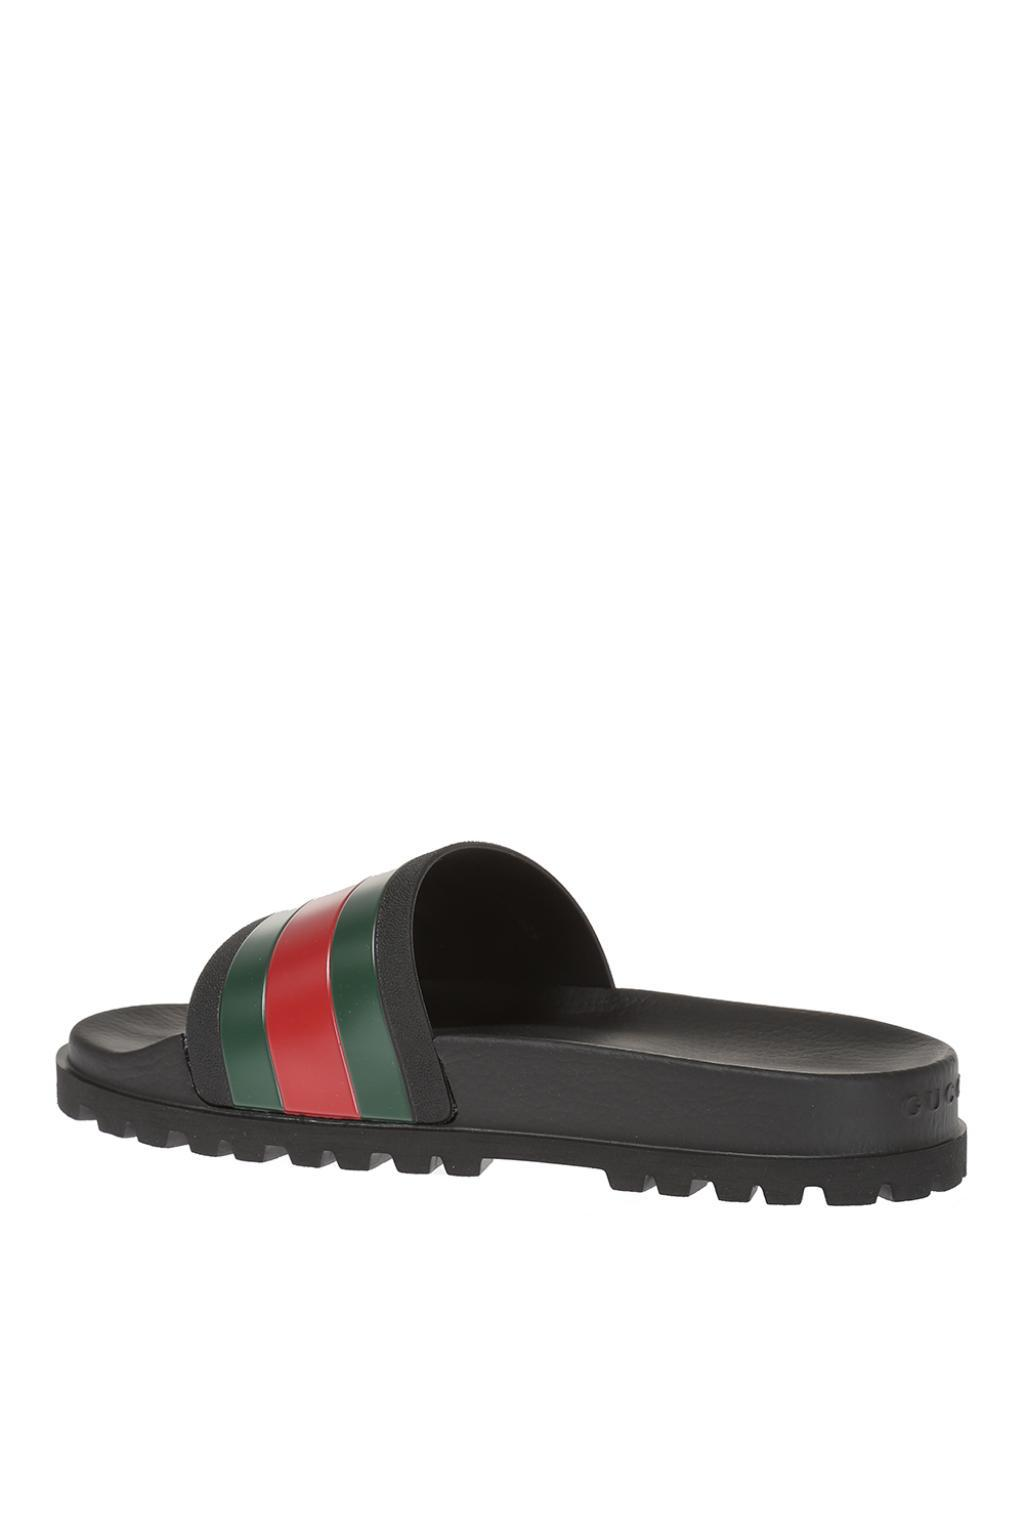 8400157a1565 Gucci - Black Striped Web Rubber Slides for Men - Lyst. View fullscreen